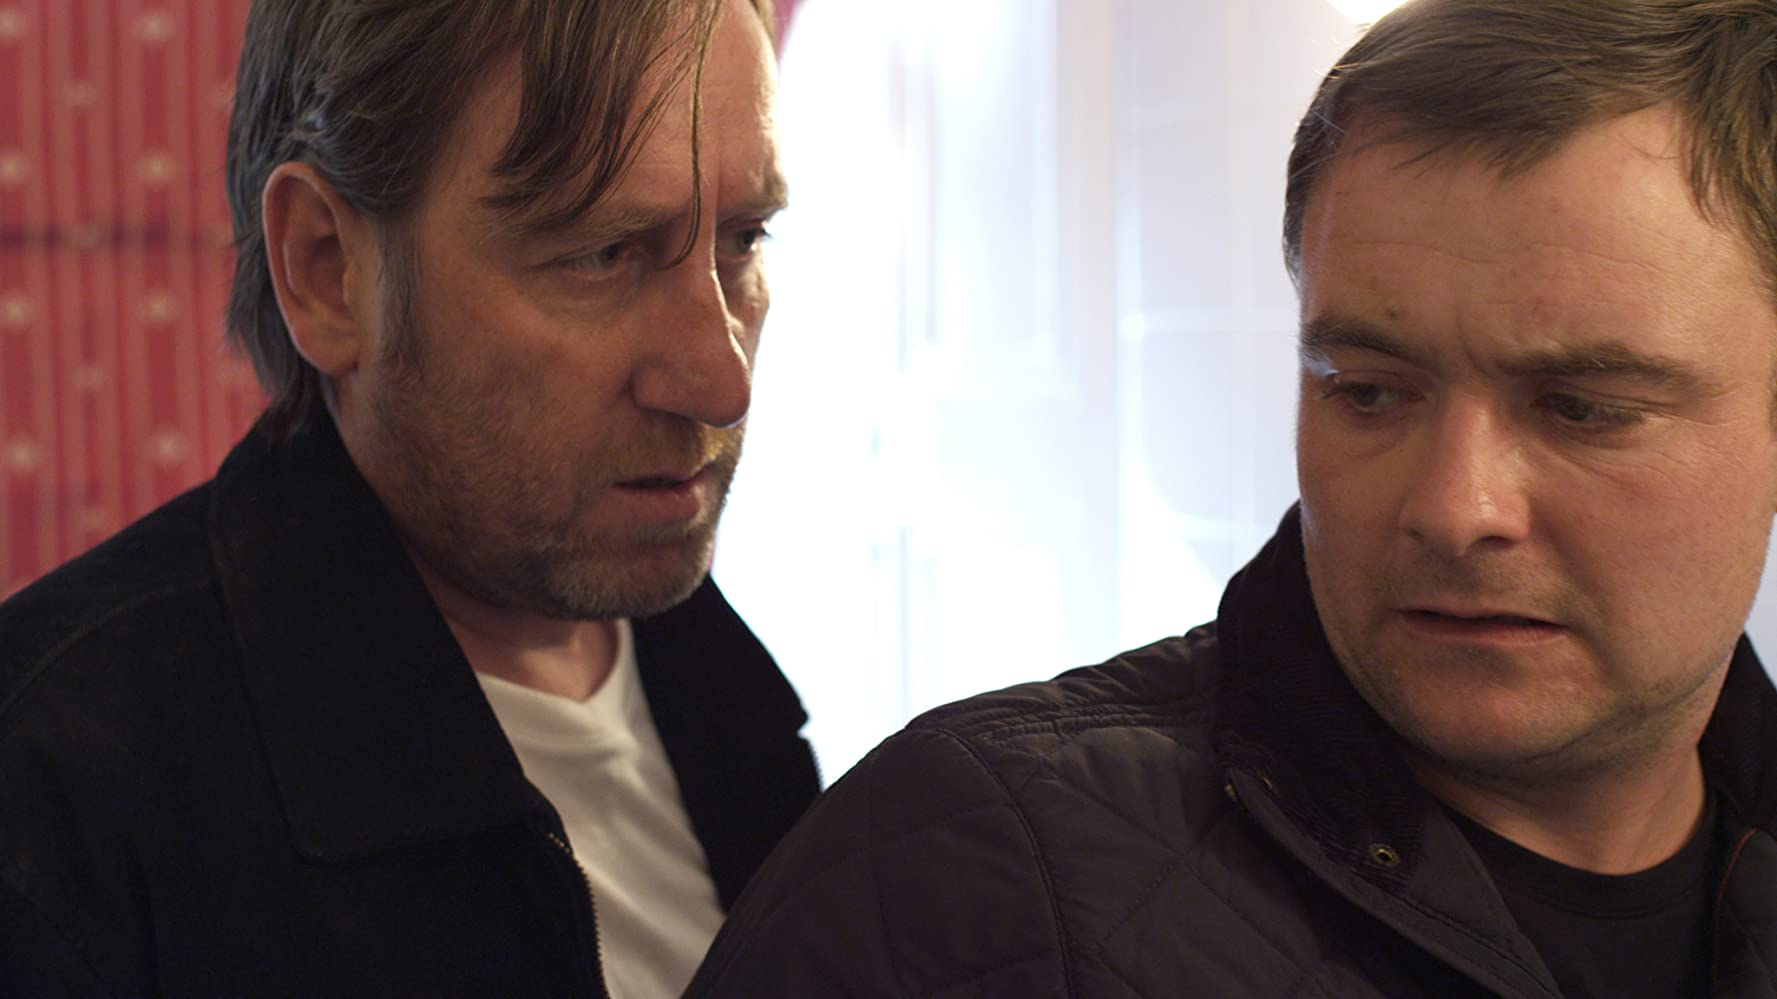 Neil Maskell and Michael Smiley in Kill List (2011)